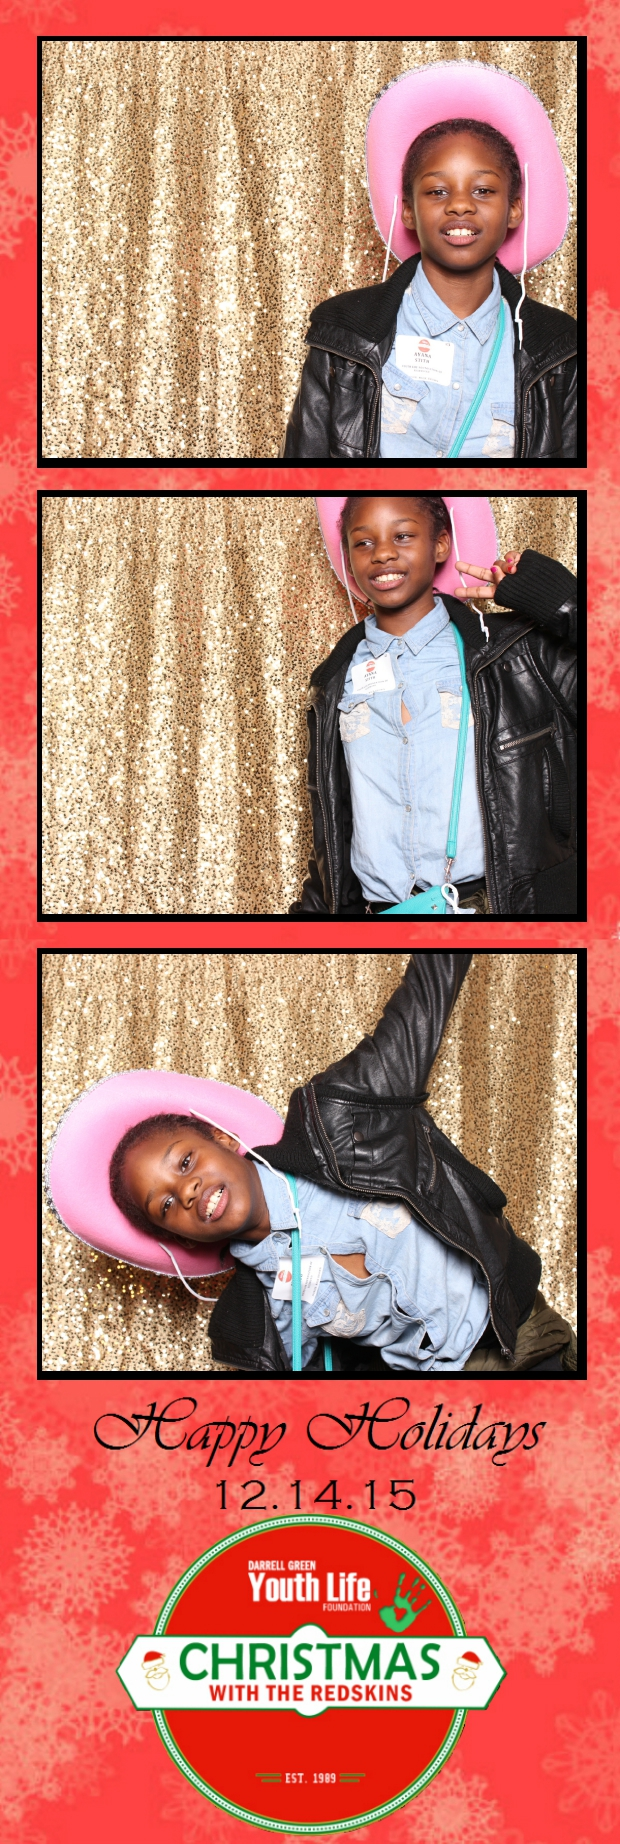 Guest House Events Photo Booth DGYLF Strips (14).jpg